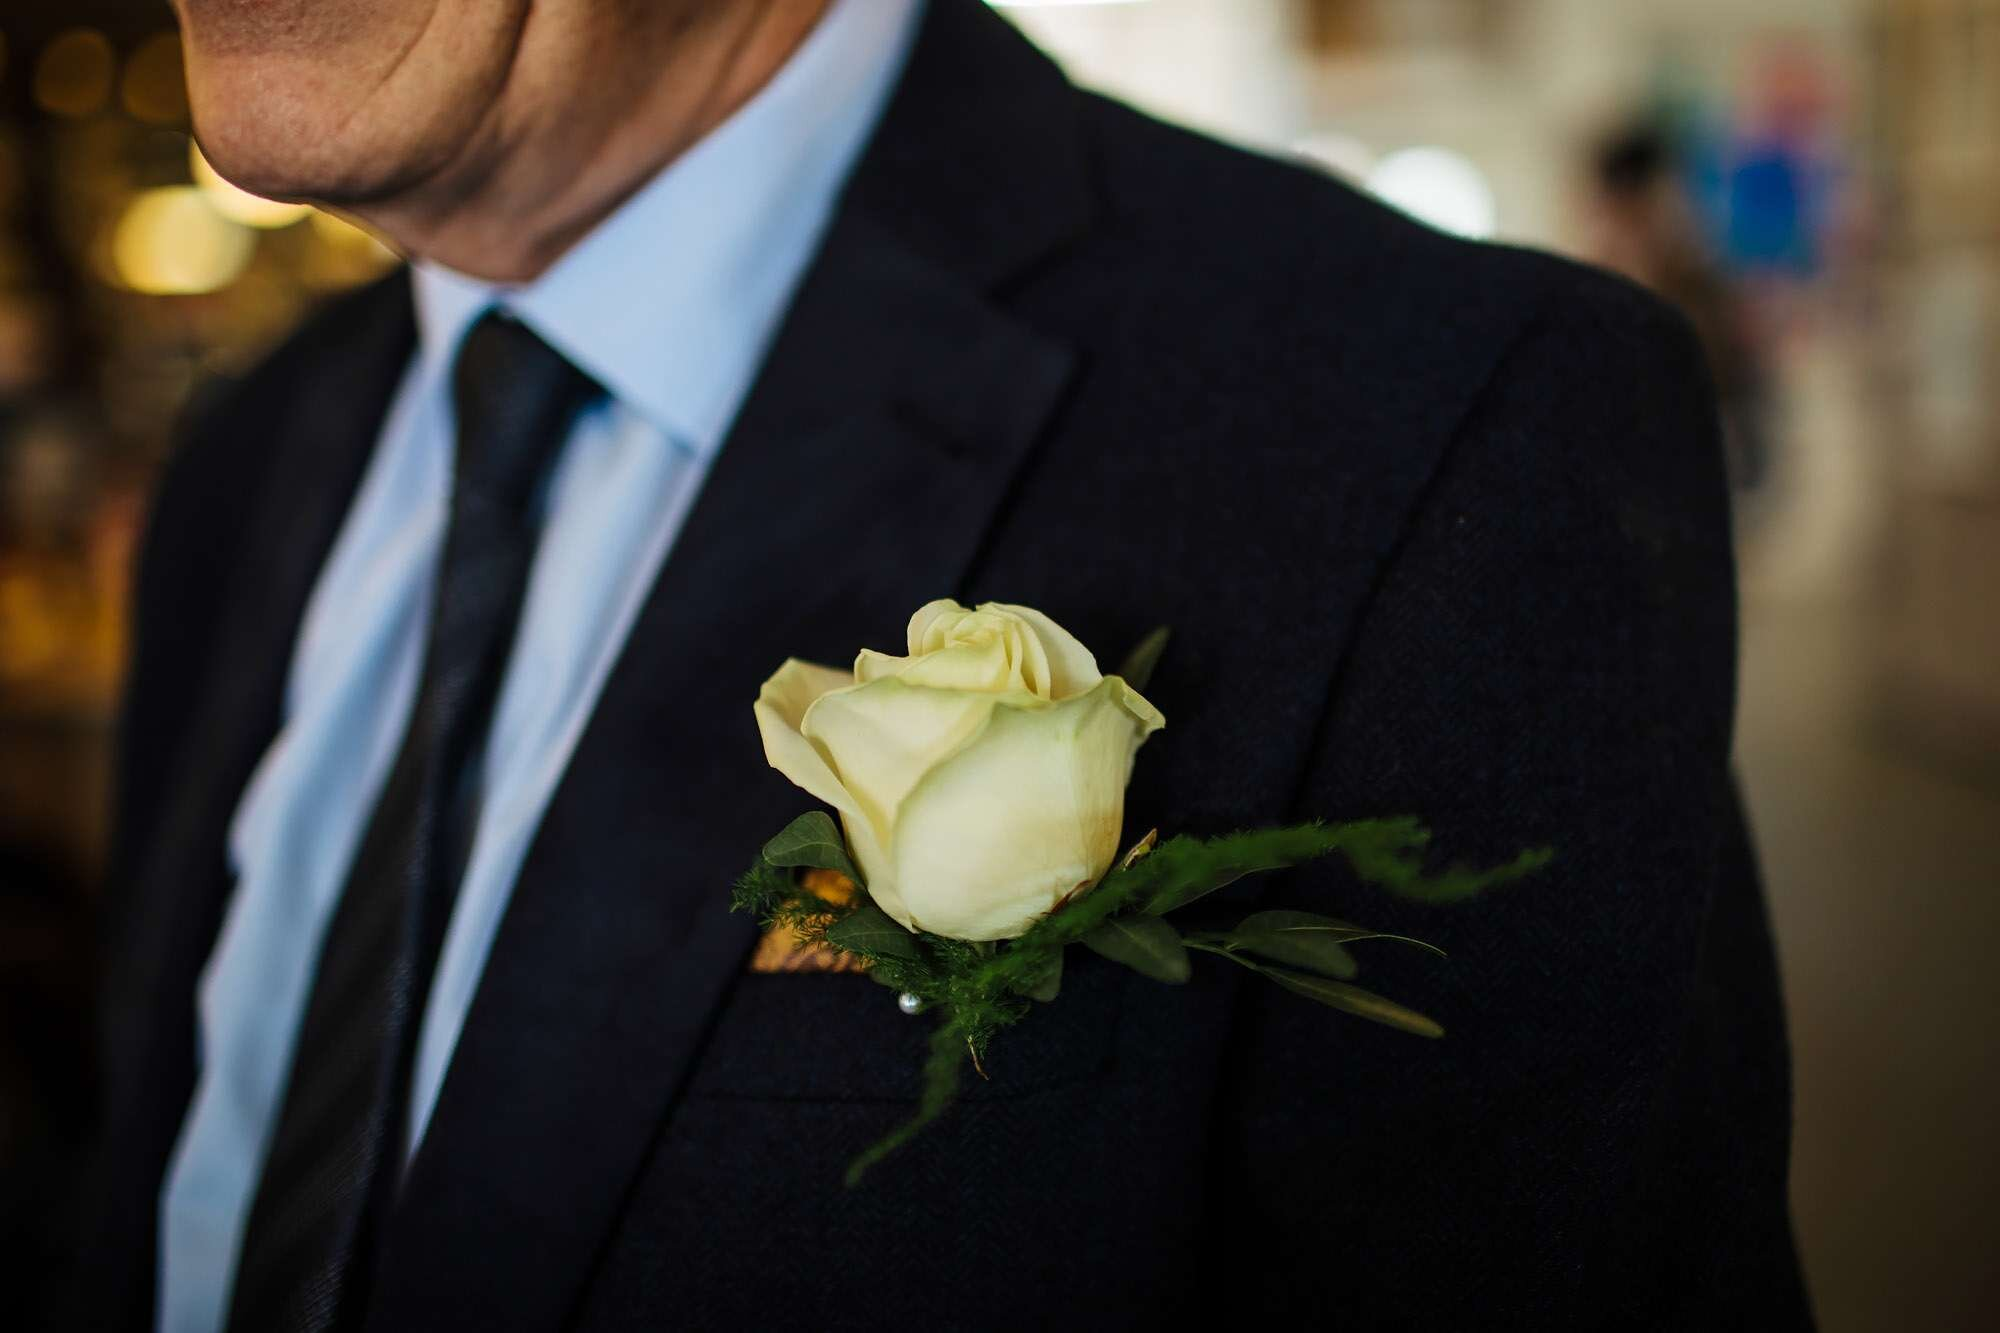 Close up of a wedding buttonhole